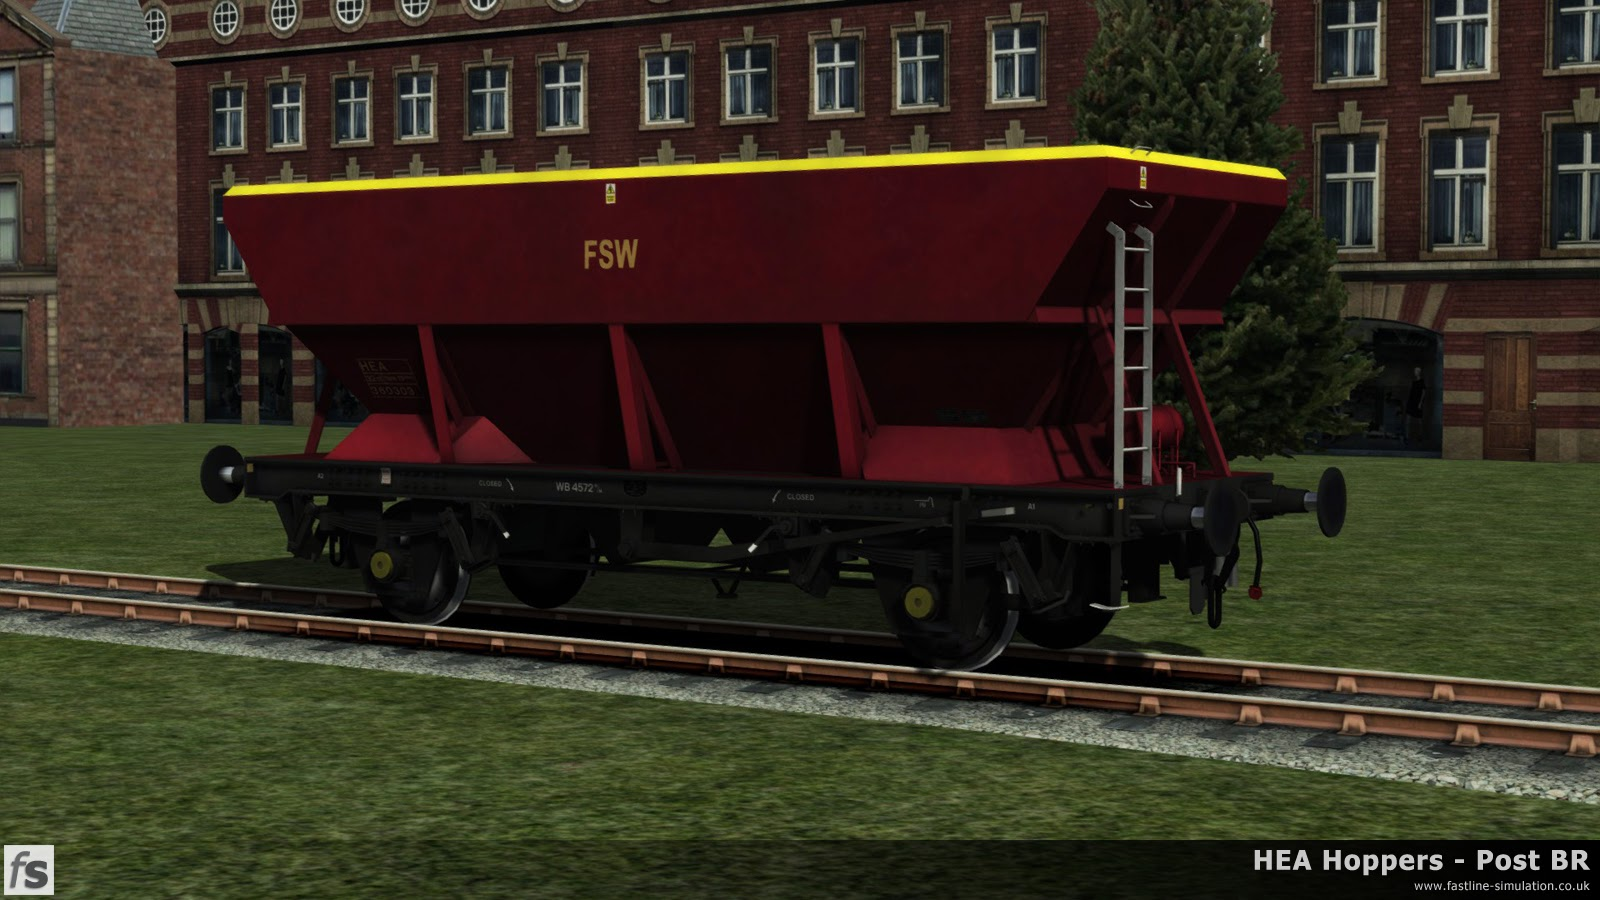 HEA Hoppers - Post BR: One of the later offset ladder HEA hoppers in almost ex-works Red and Gold livery under development for Train Simulator 2014.